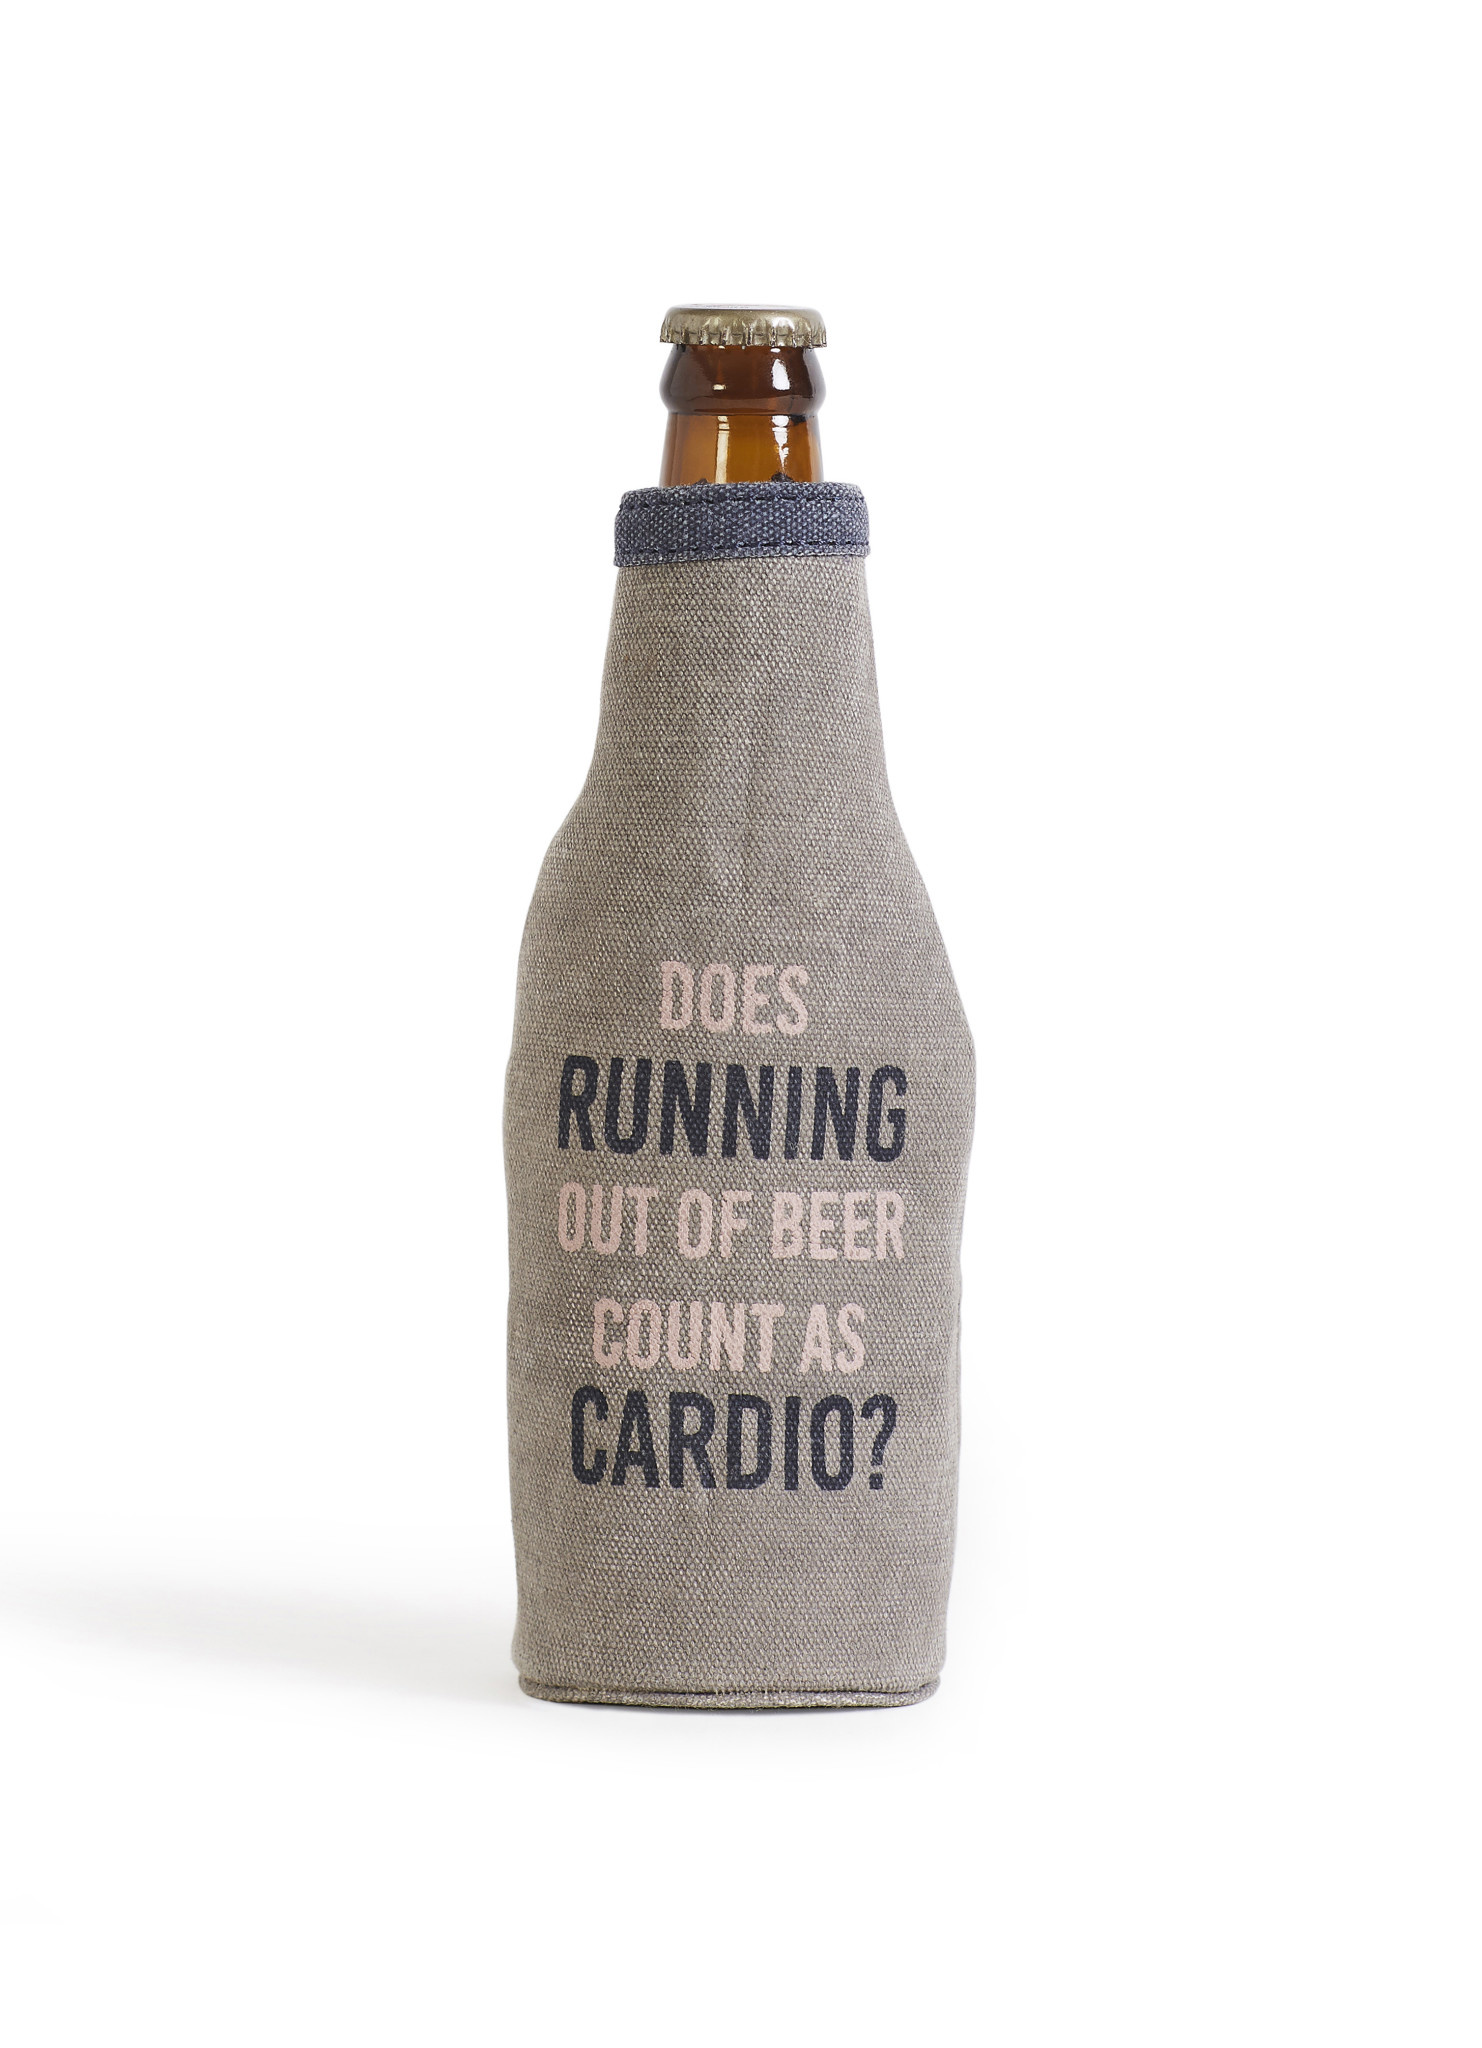 Mona B Cardio Bottle Koozie